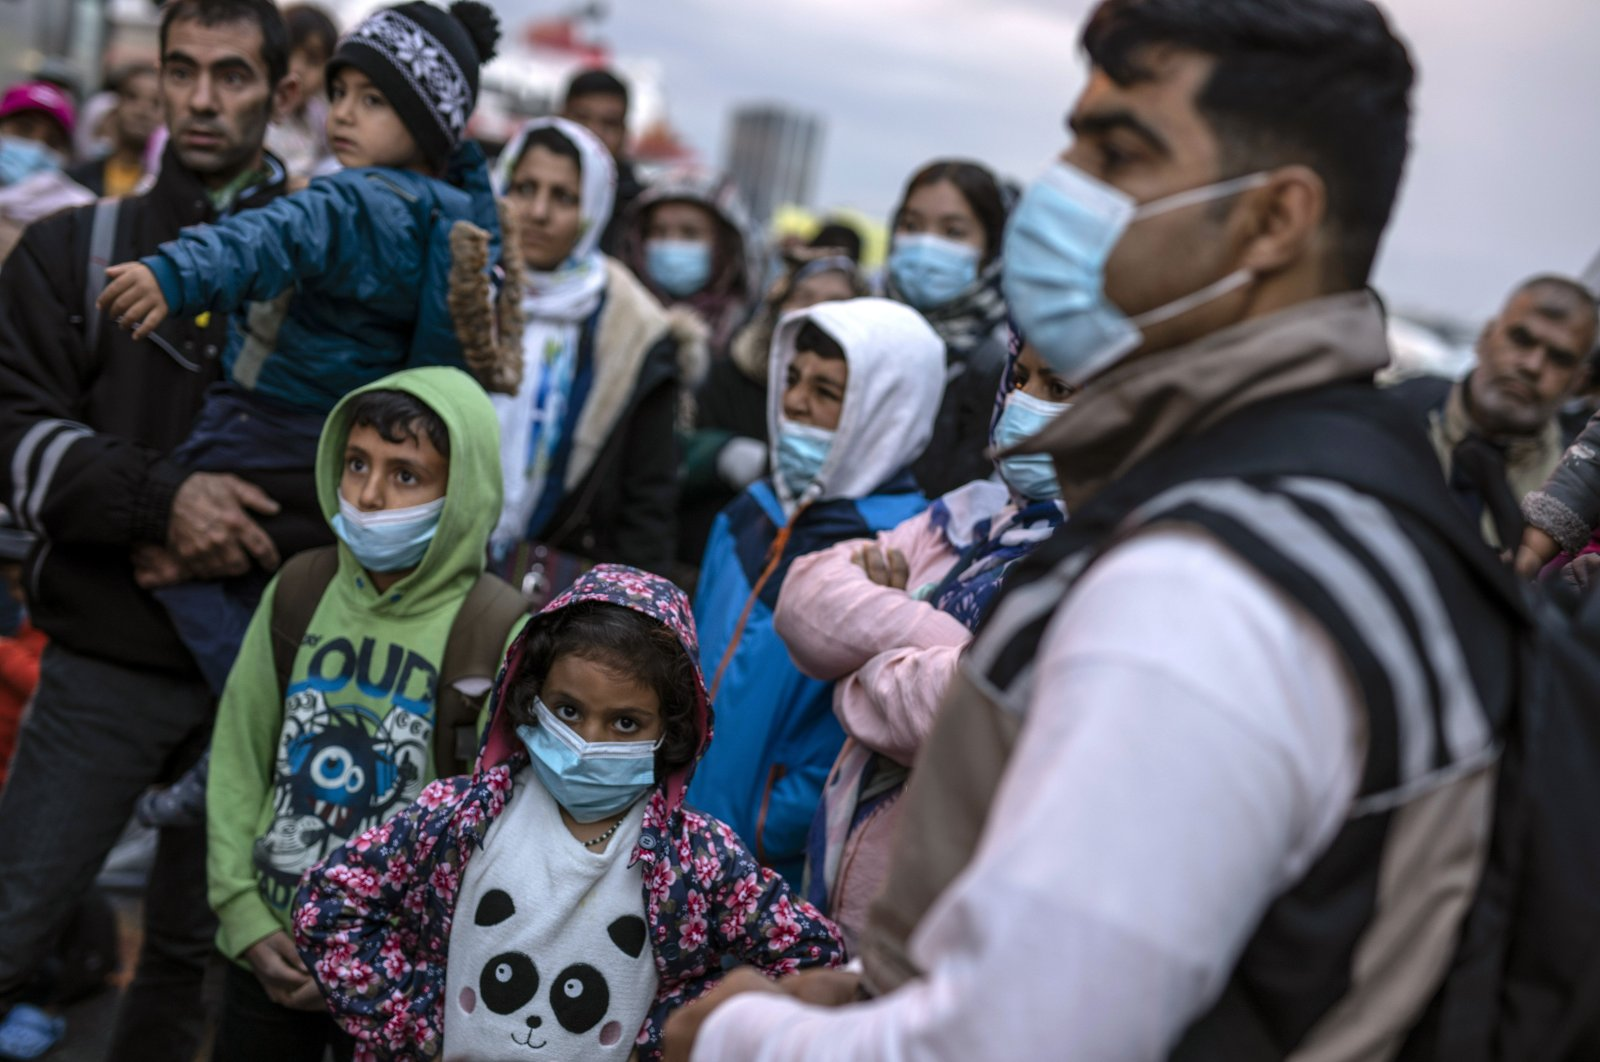 Refugees and migrants wearing masks to prevent the spread of the coronavirus, wait to get on a bus after their arrival at the port of Piraeus, near Athens, May 4, 2020. (AP Photo)